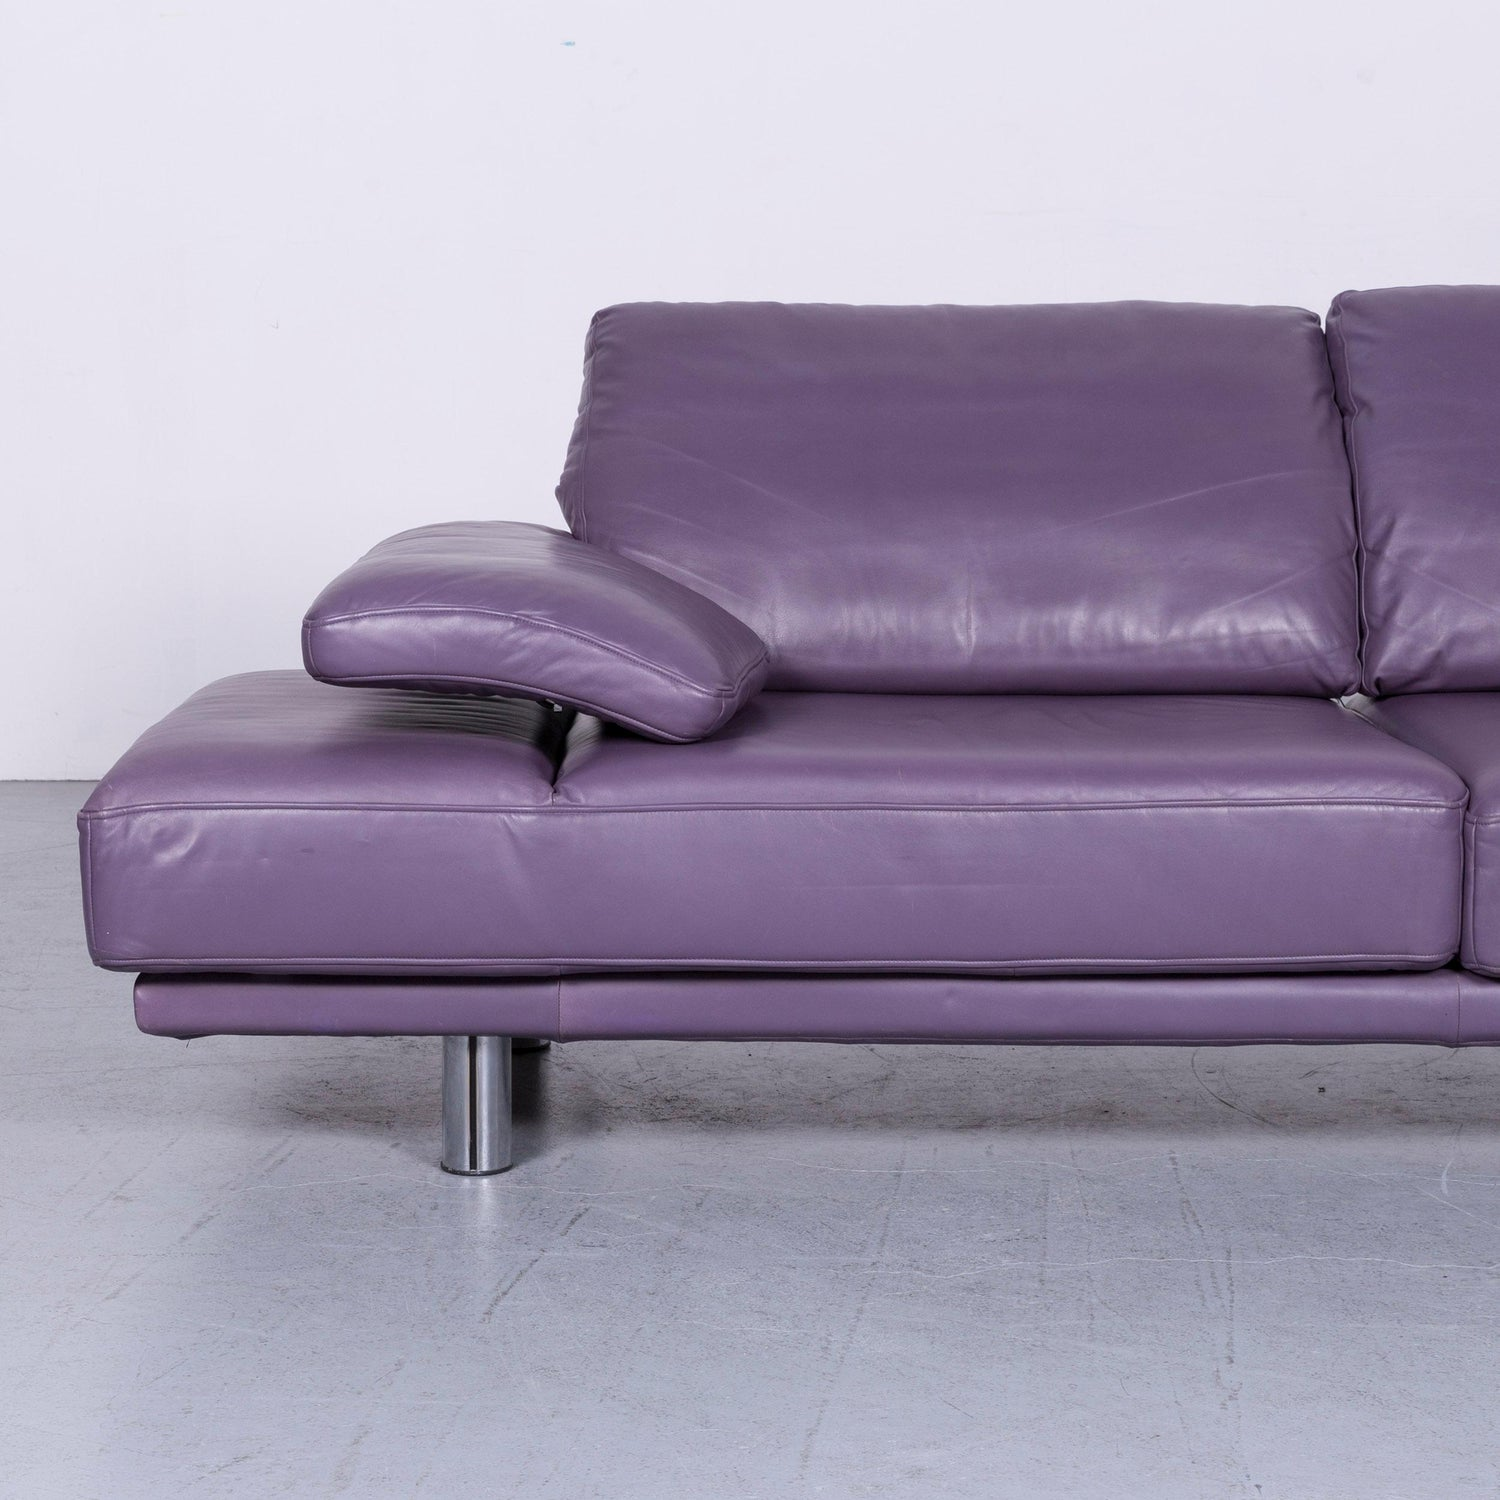 Enjoyable Rolf Benz 2400 Designer Leather Sofa Purple Couch With Theyellowbook Wood Chair Design Ideas Theyellowbookinfo